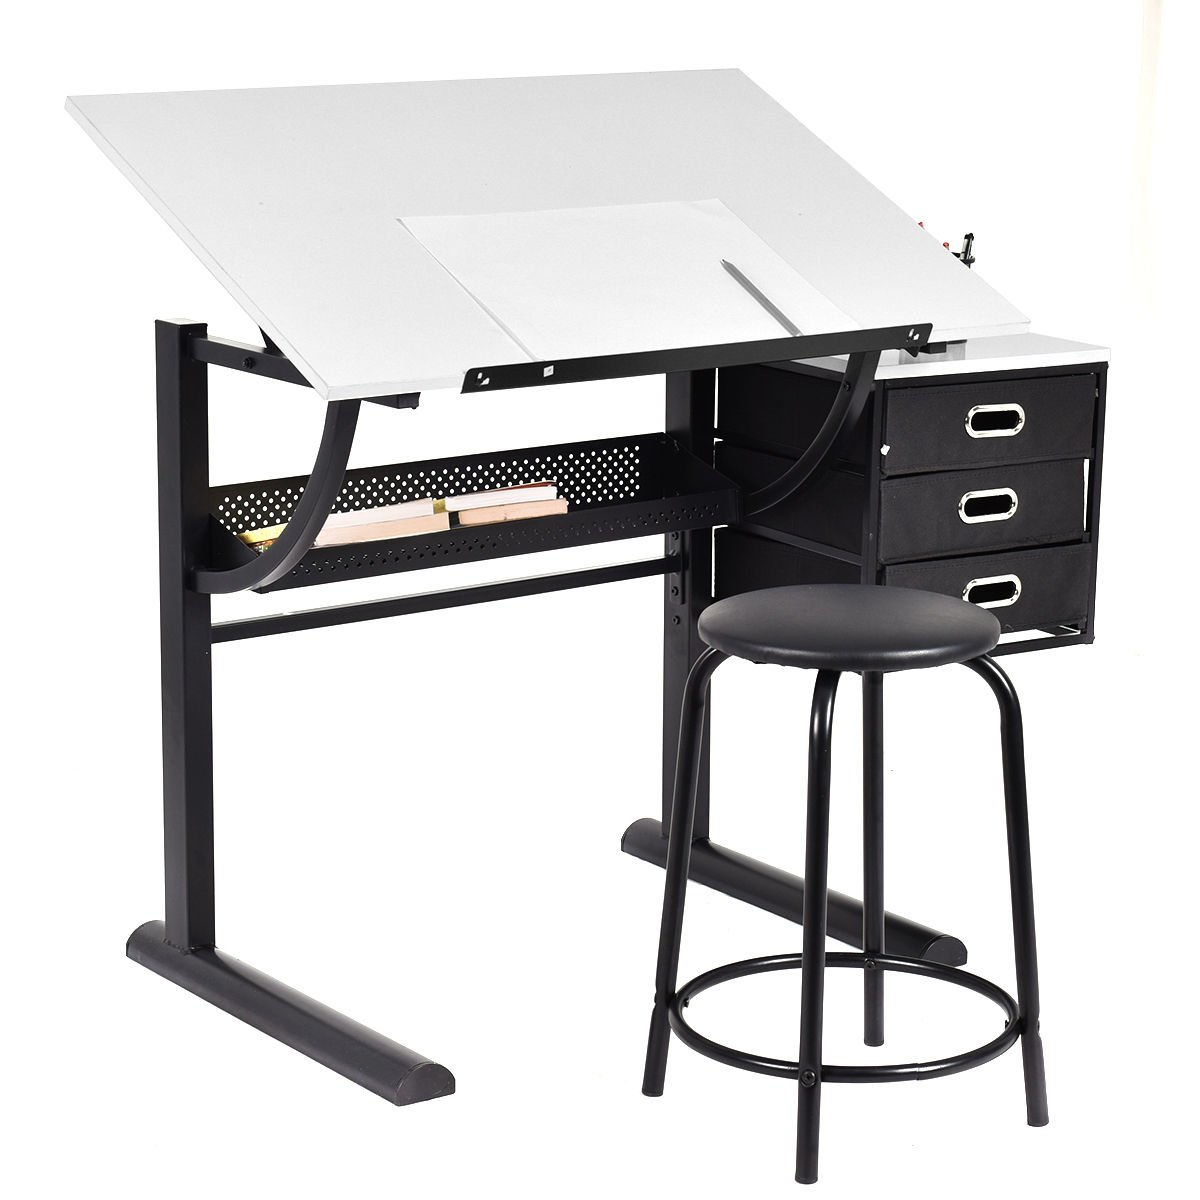 Amazon.com: Tangkula Drafting Table Art U0026 Craft Drawing Desk Art Hobby  Folding Adjustable W/ Stool: Kitchen U0026 Dining